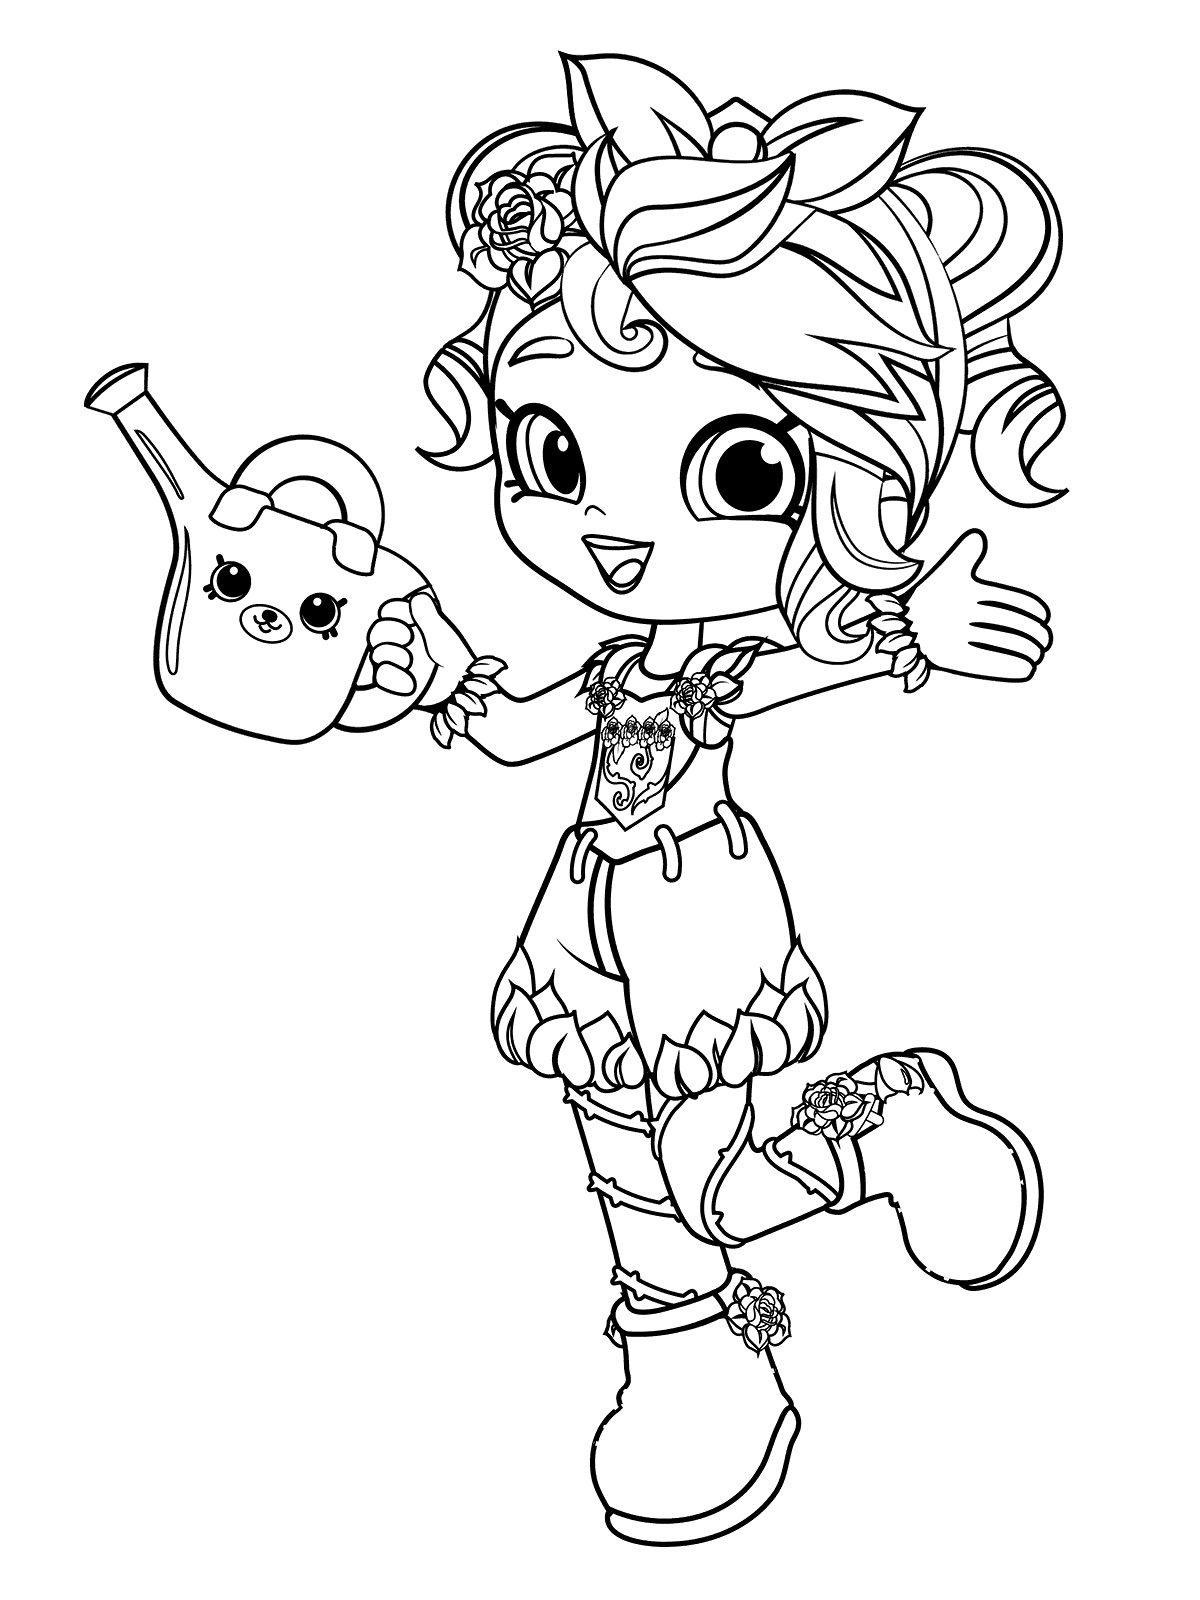 Pin by Maria Rodriguez on Shopkins | Shopkins colouring ...